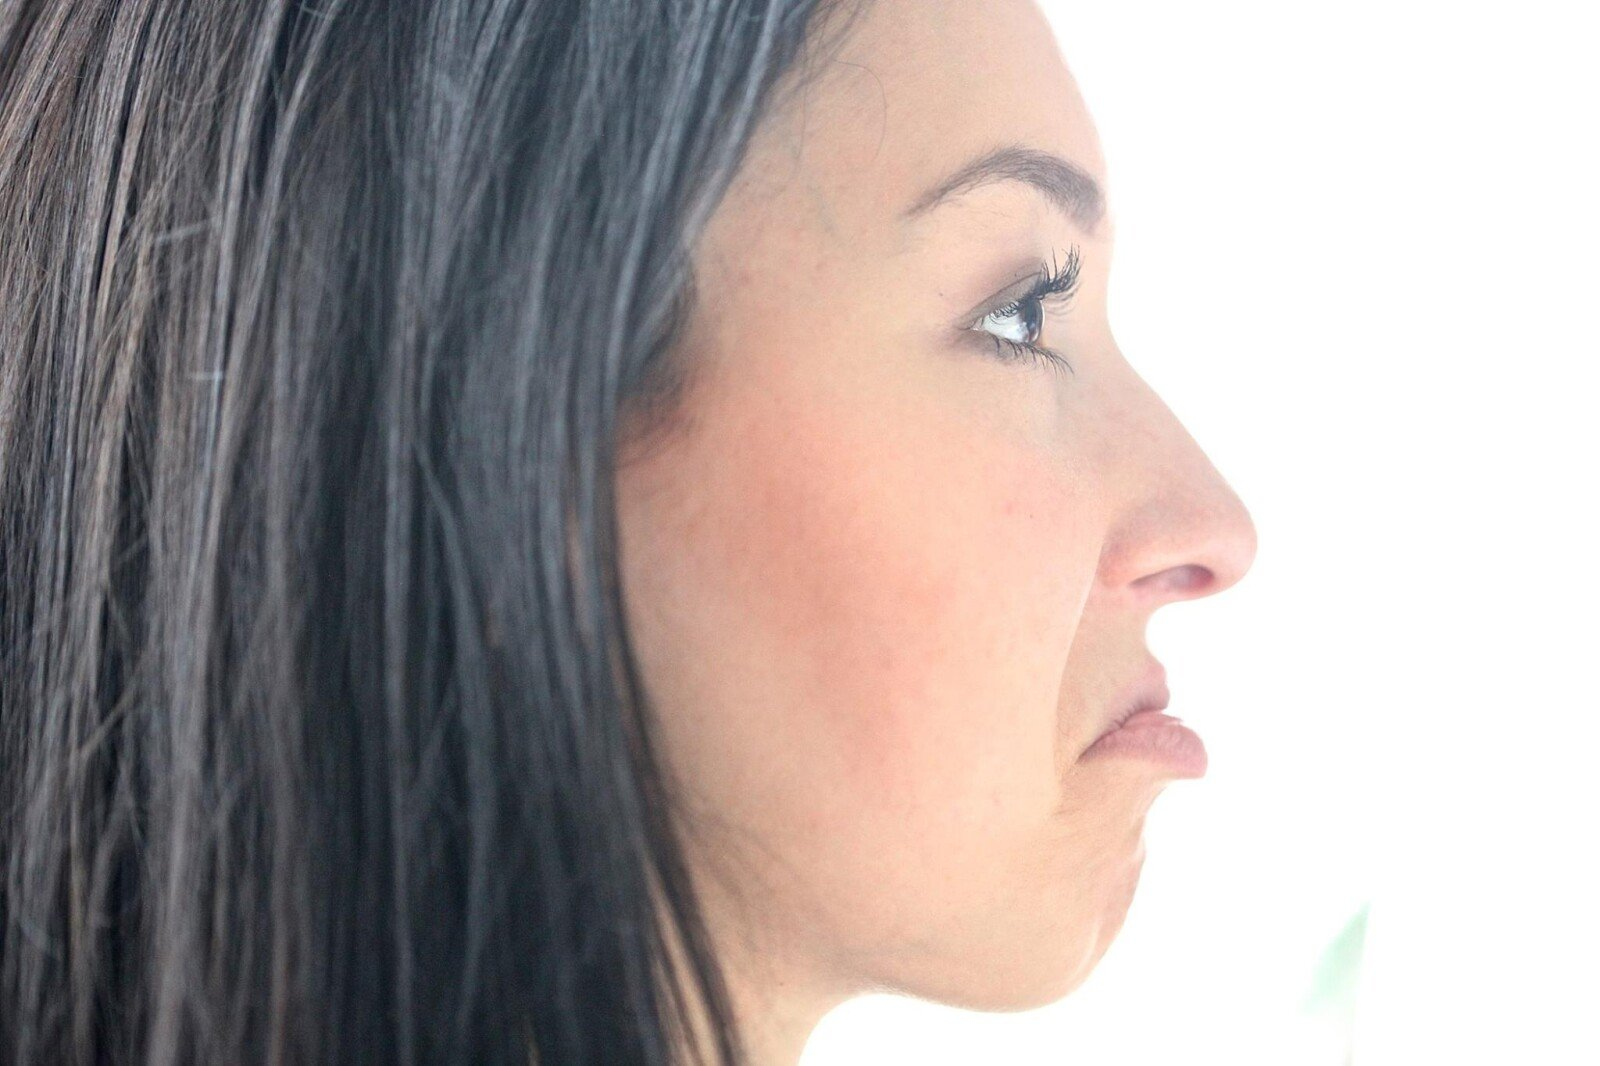 Strengths and weaknesses: Image of a woman pouting